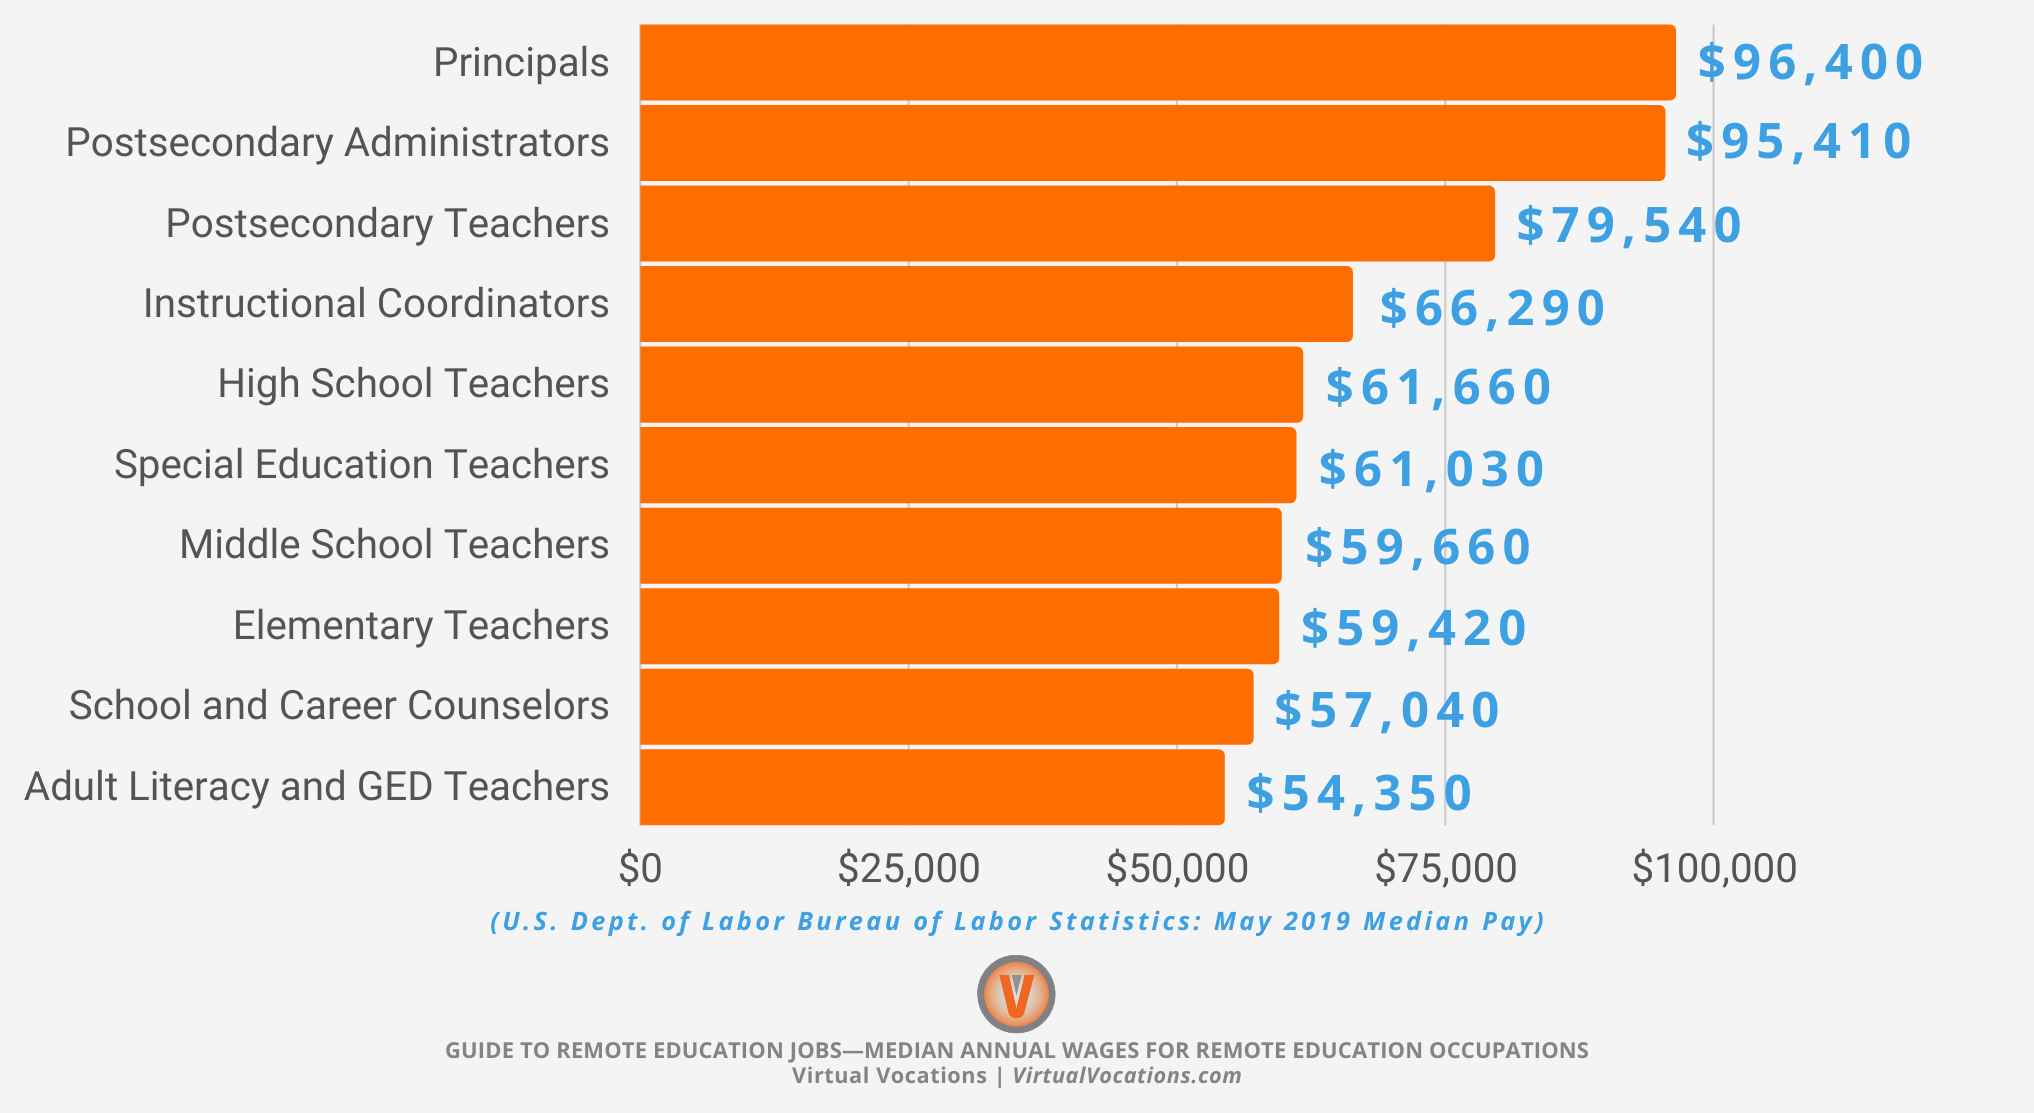 Median Annual Wages for Remote Education Occupations - Guide to Remote Education Jobs - Virtual Vocations